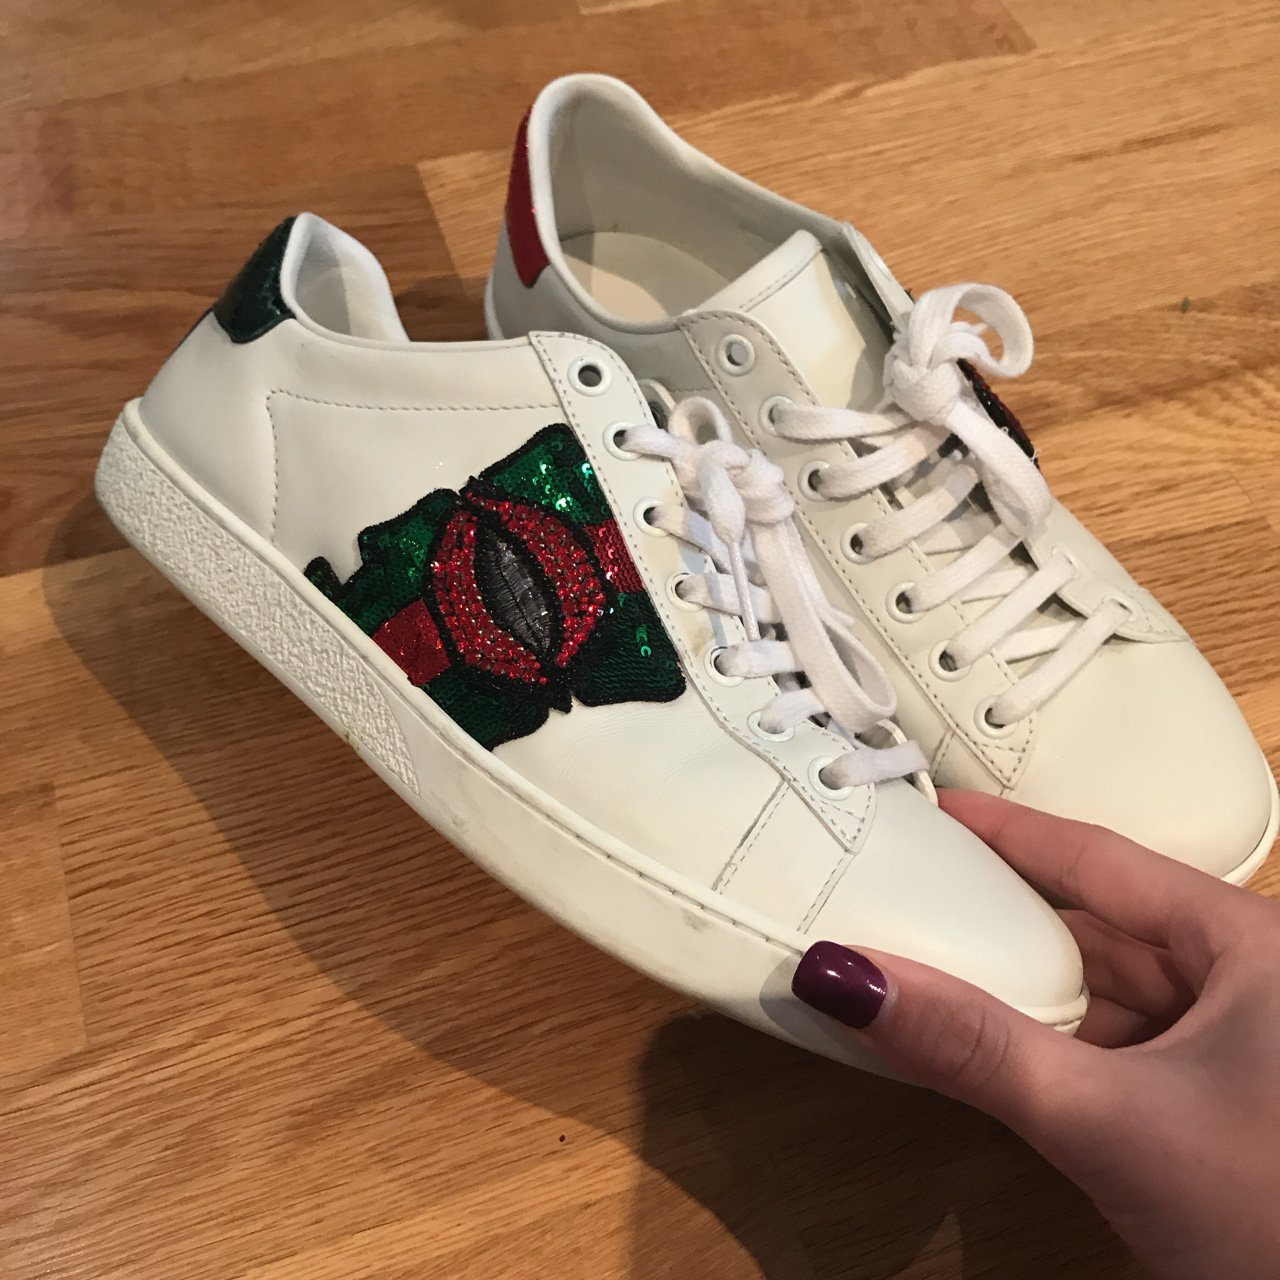 8dc633c0c51 Gucci sneakers with embellished lips. There are no gems for - Depop